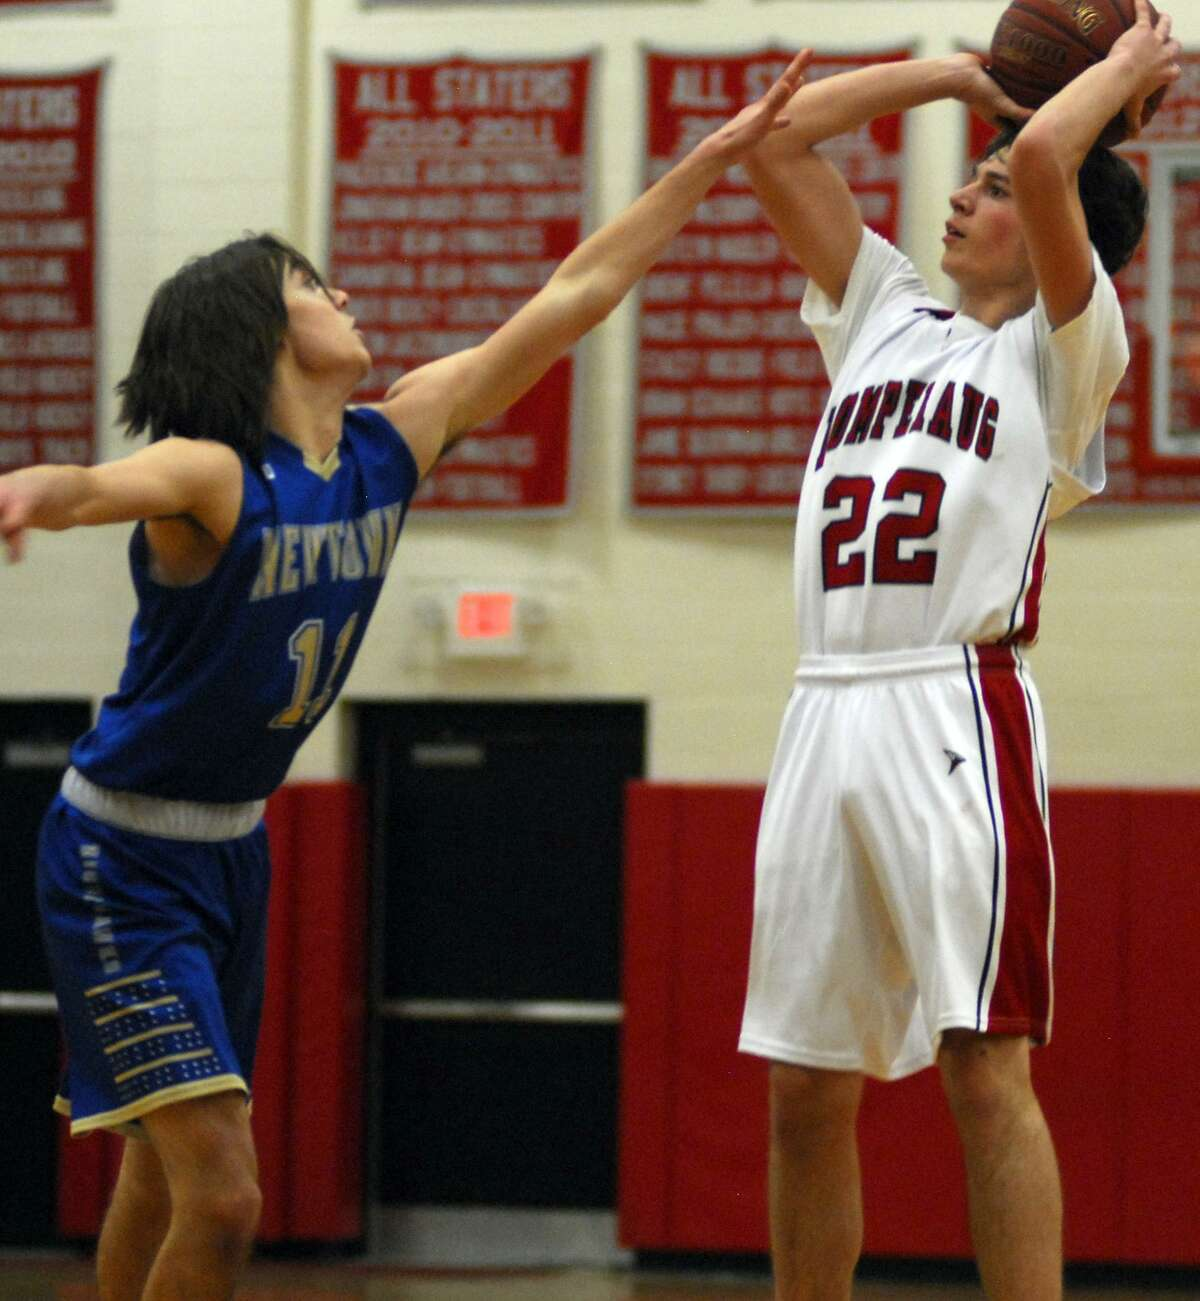 Pomperaug's Mario Paniccia, right, gets a shot over a Newtown defender during a game Saturday night.